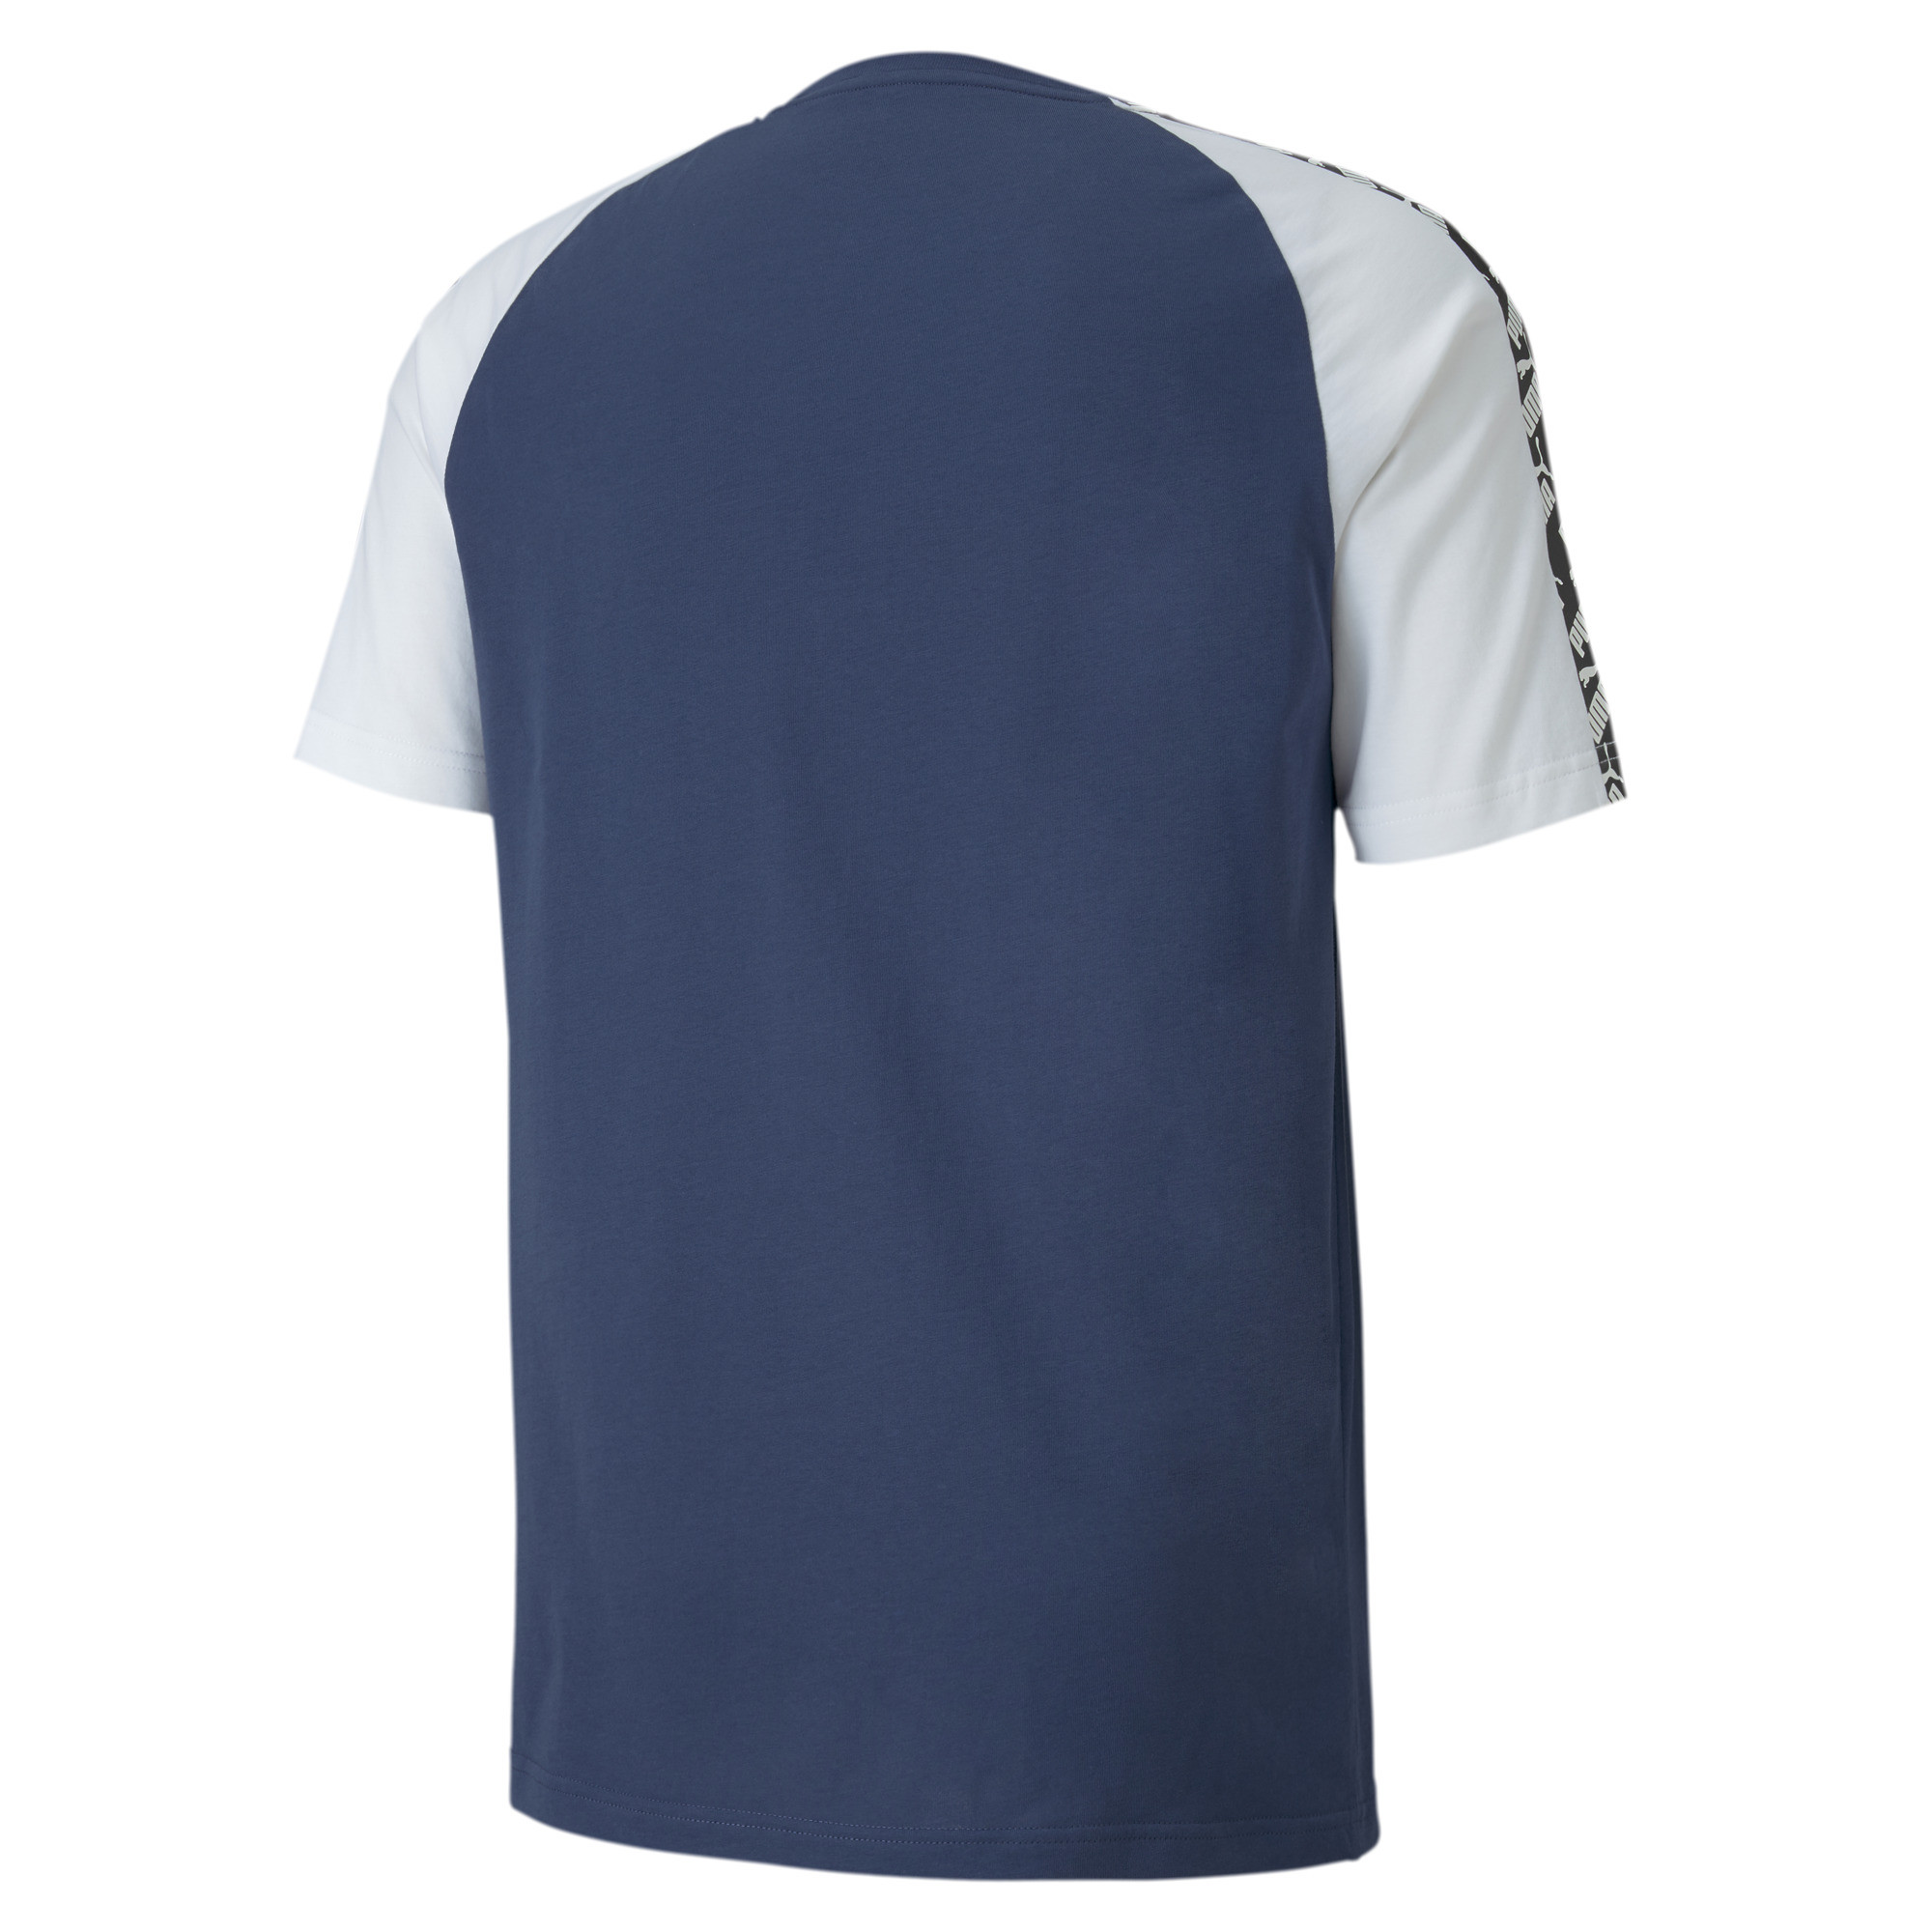 PUMA-Amplified-Men-039-s-Raglan-Tee-Men-Tee-Basics thumbnail 15